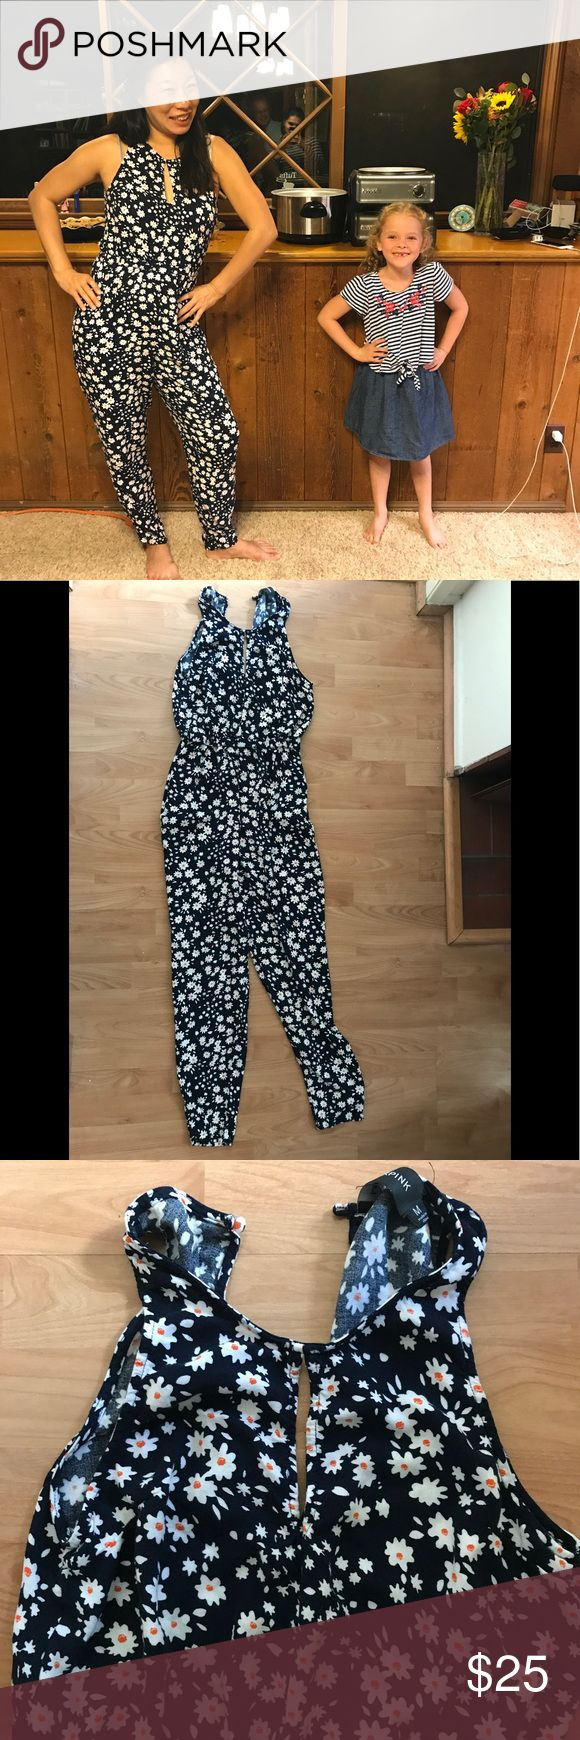 """MINKPINK Romper Jumpsuit Floral and so cute! This is in great shape and I love it to death. But want someone to have it. I'm 5'7"""" 31"""" waist. 34c bust.  This has room to wiggle if I were to gain weight.  Some thread runs in the fabric as pictured but only noticeable from close up. MINKPINK Pants Jumpsuits & Rompers"""